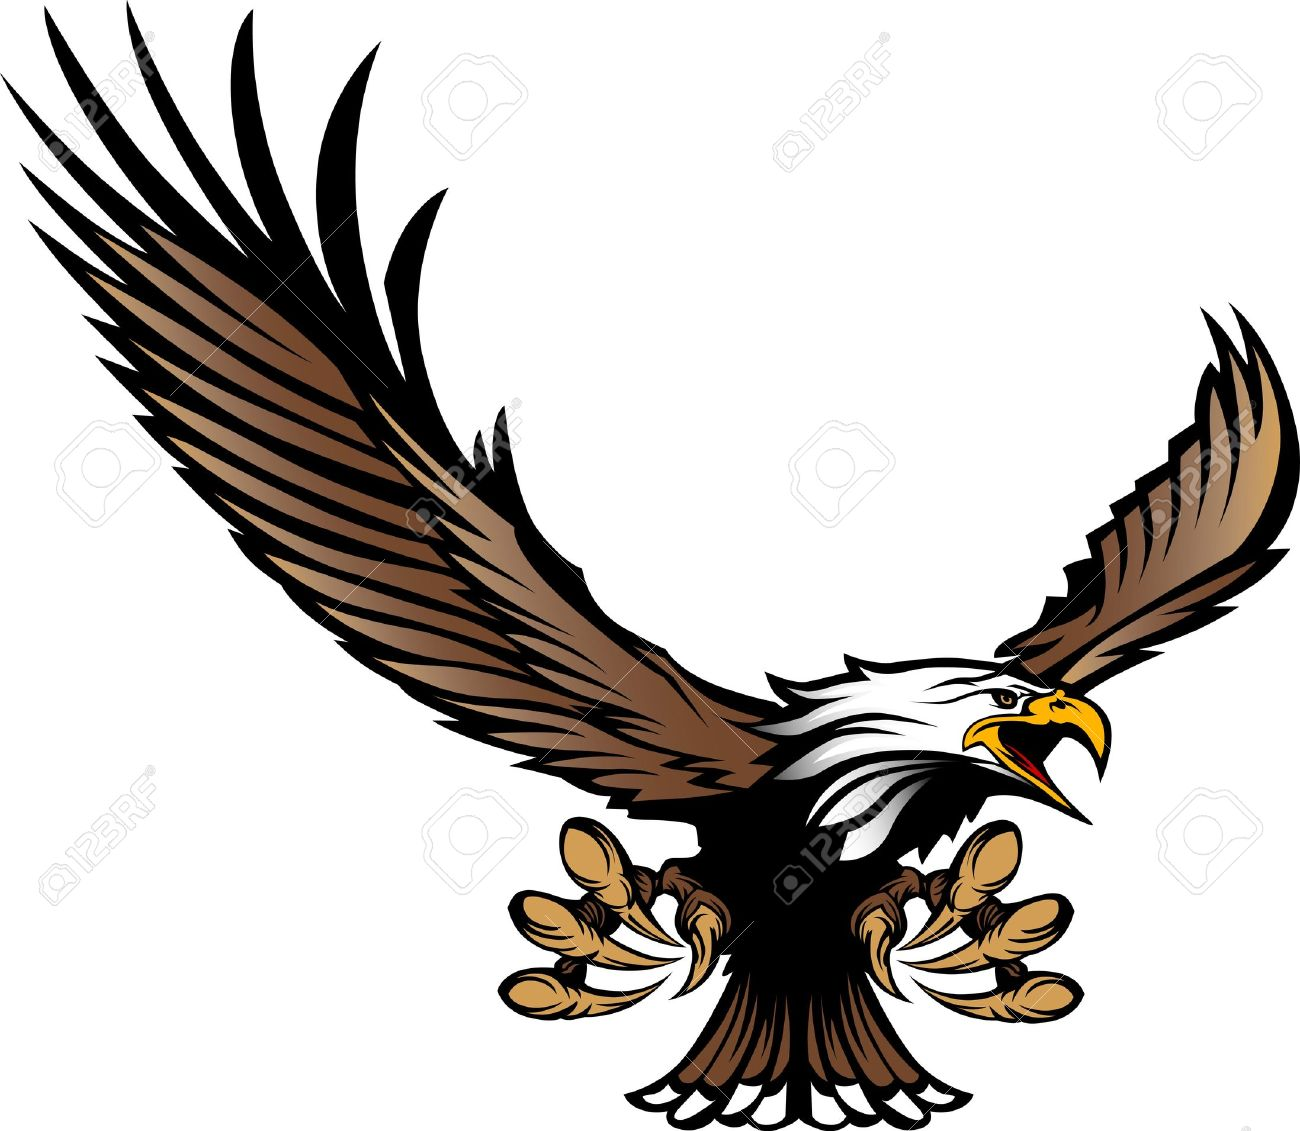 Graphic Mascot Image of a Flying Eagle with wings and Talons Stock Vector - 11107638